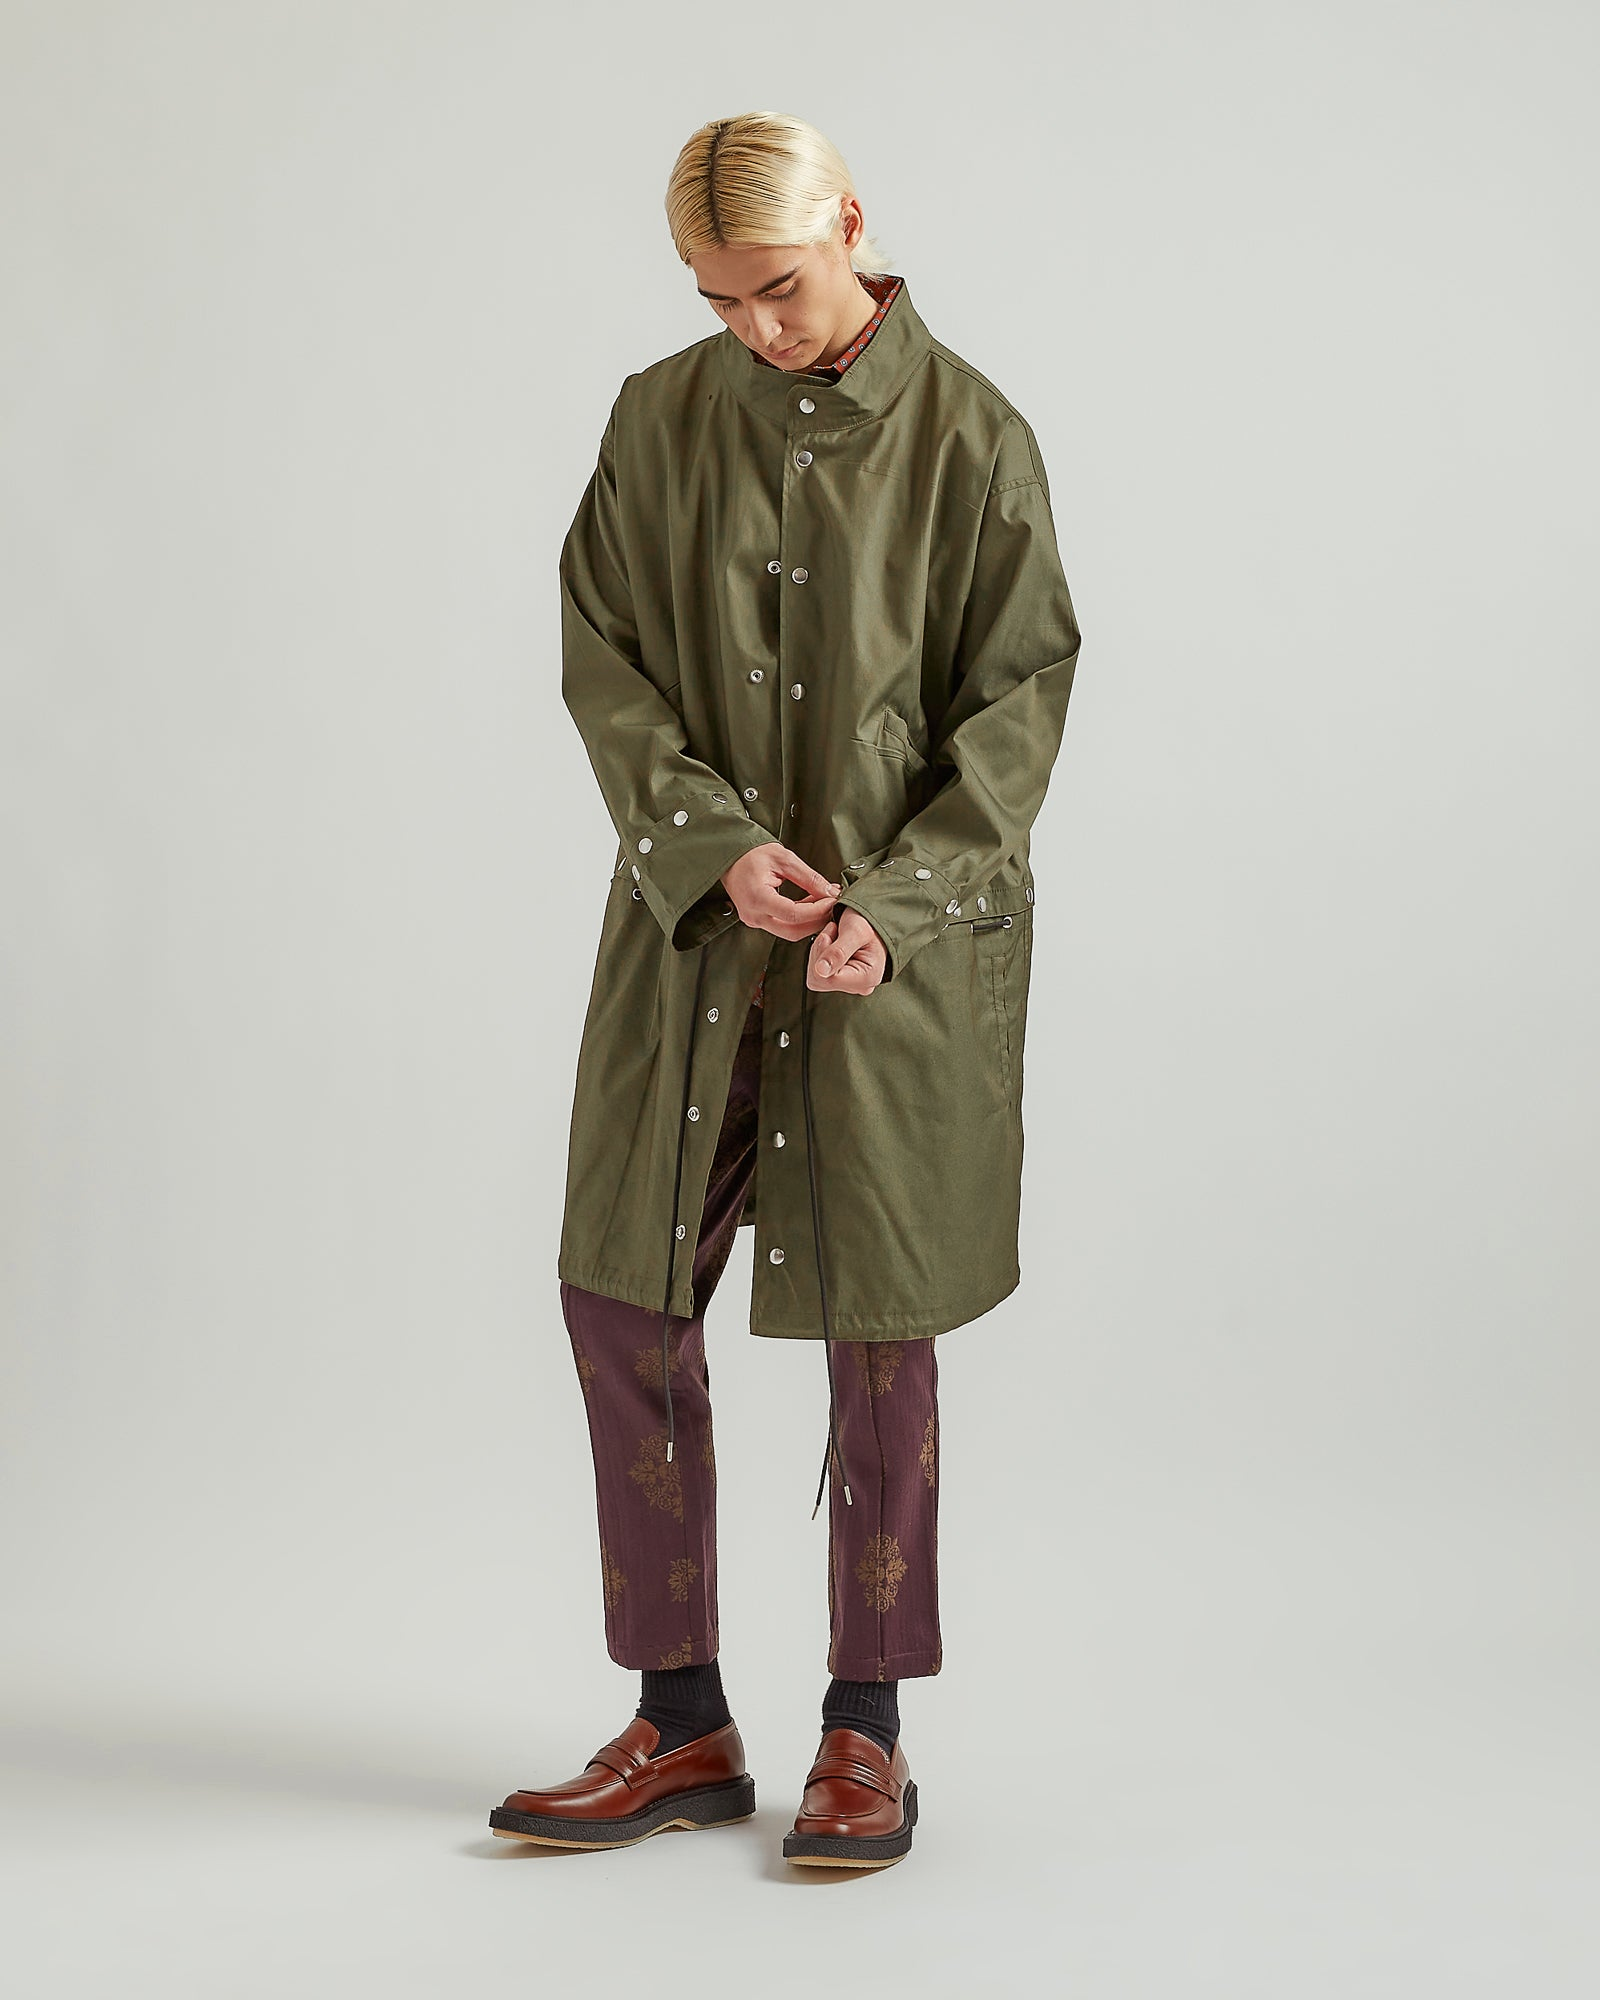 G65 Anorak in Army